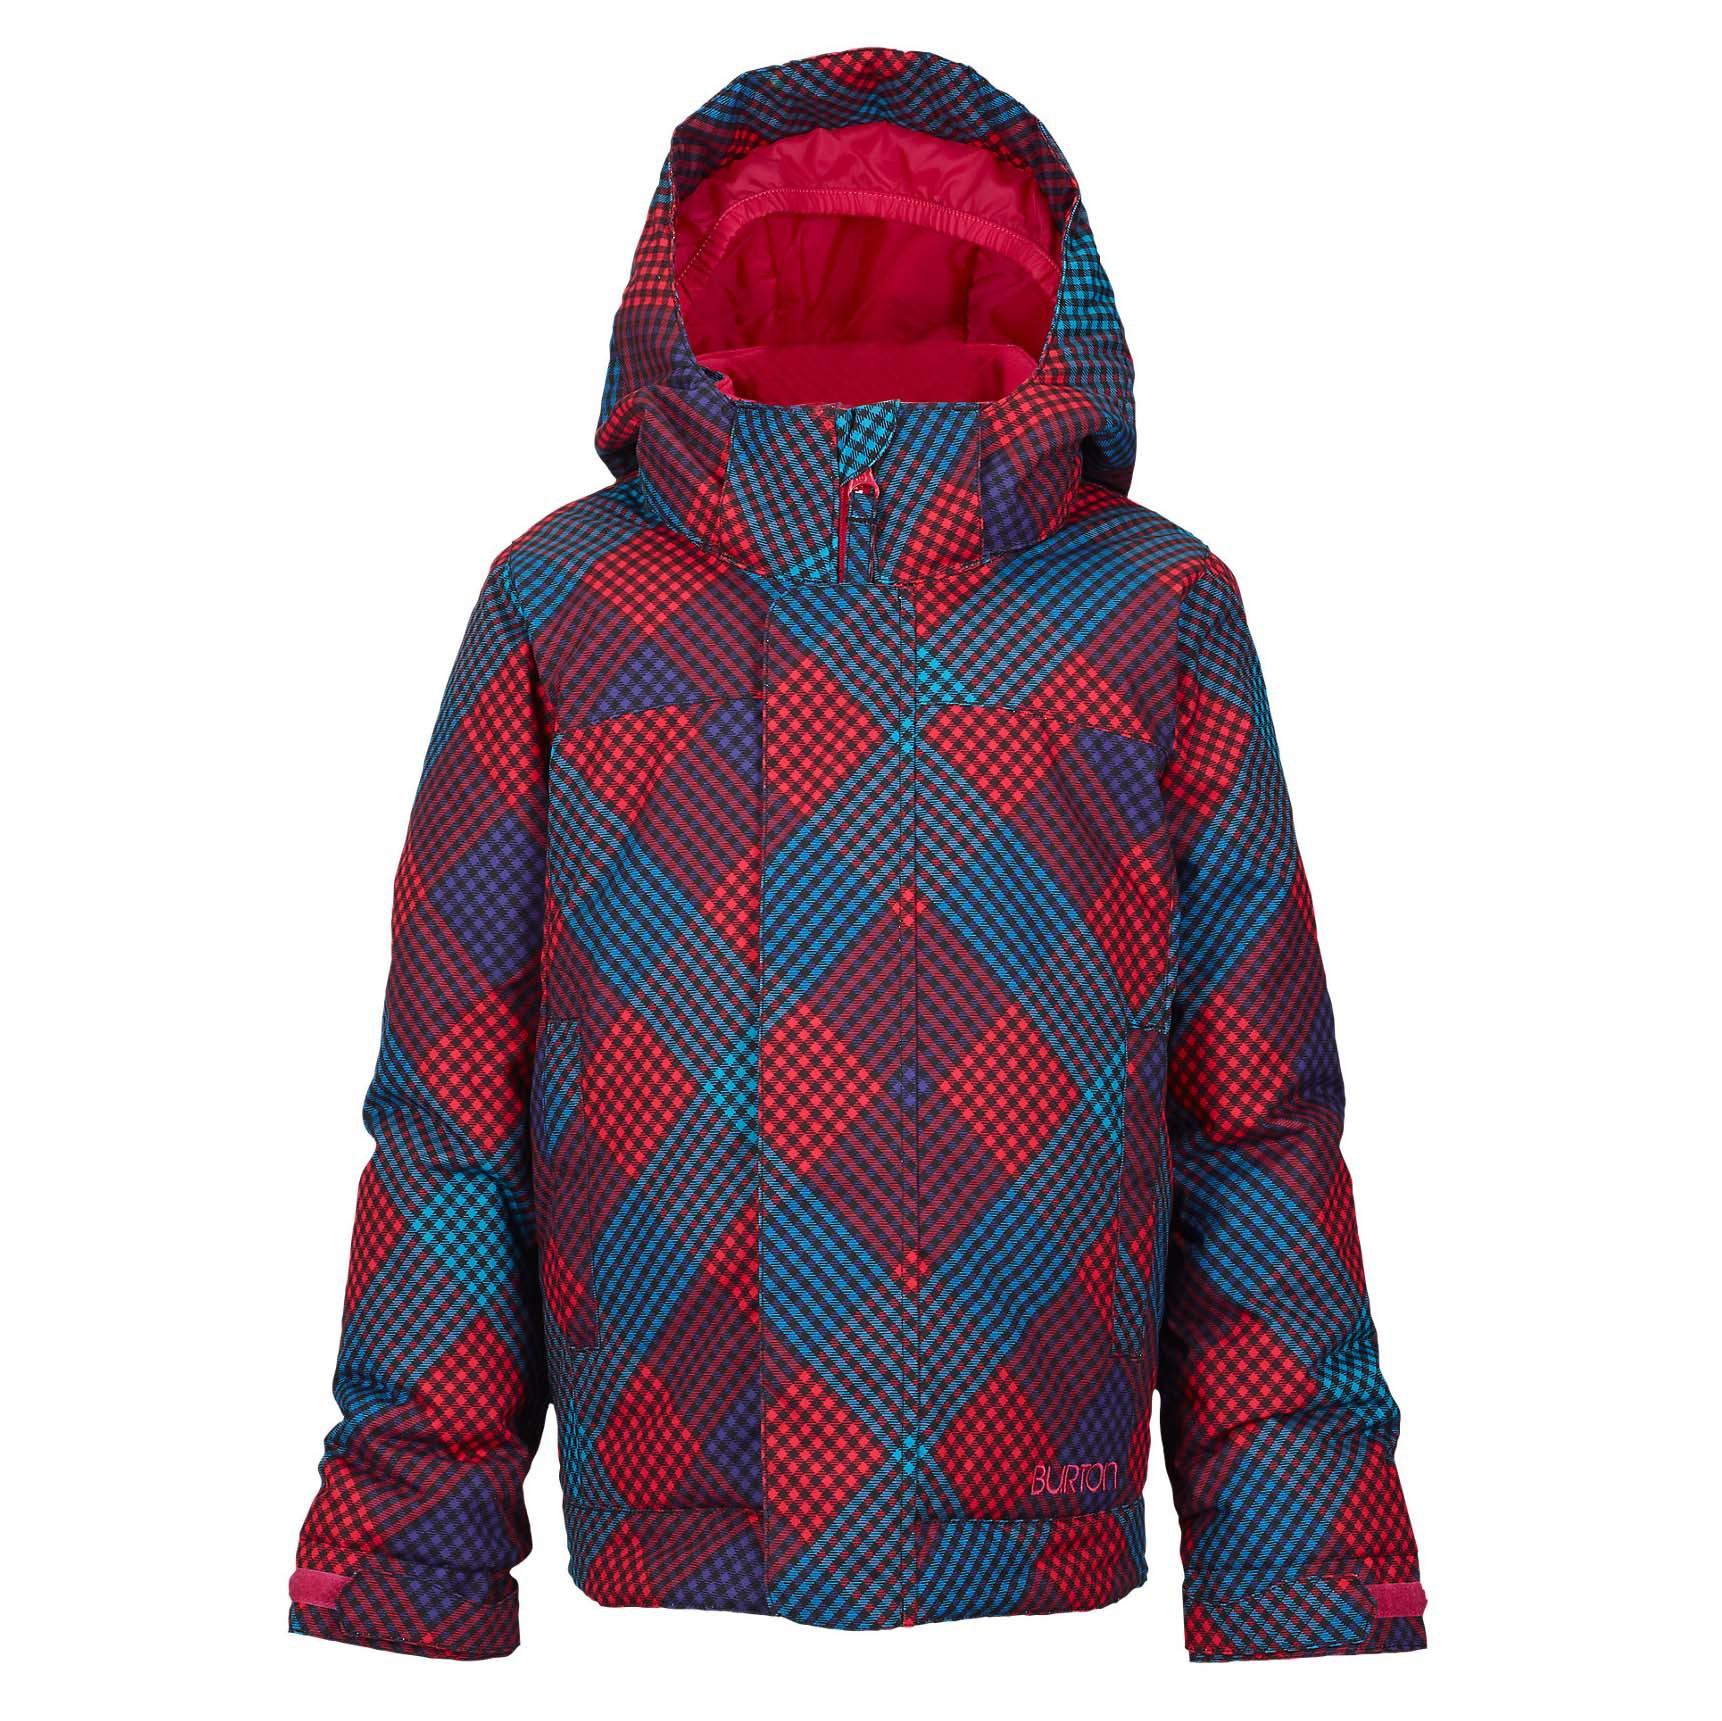 Bunda Burton Girls Minishred Elodie marilyn checkers